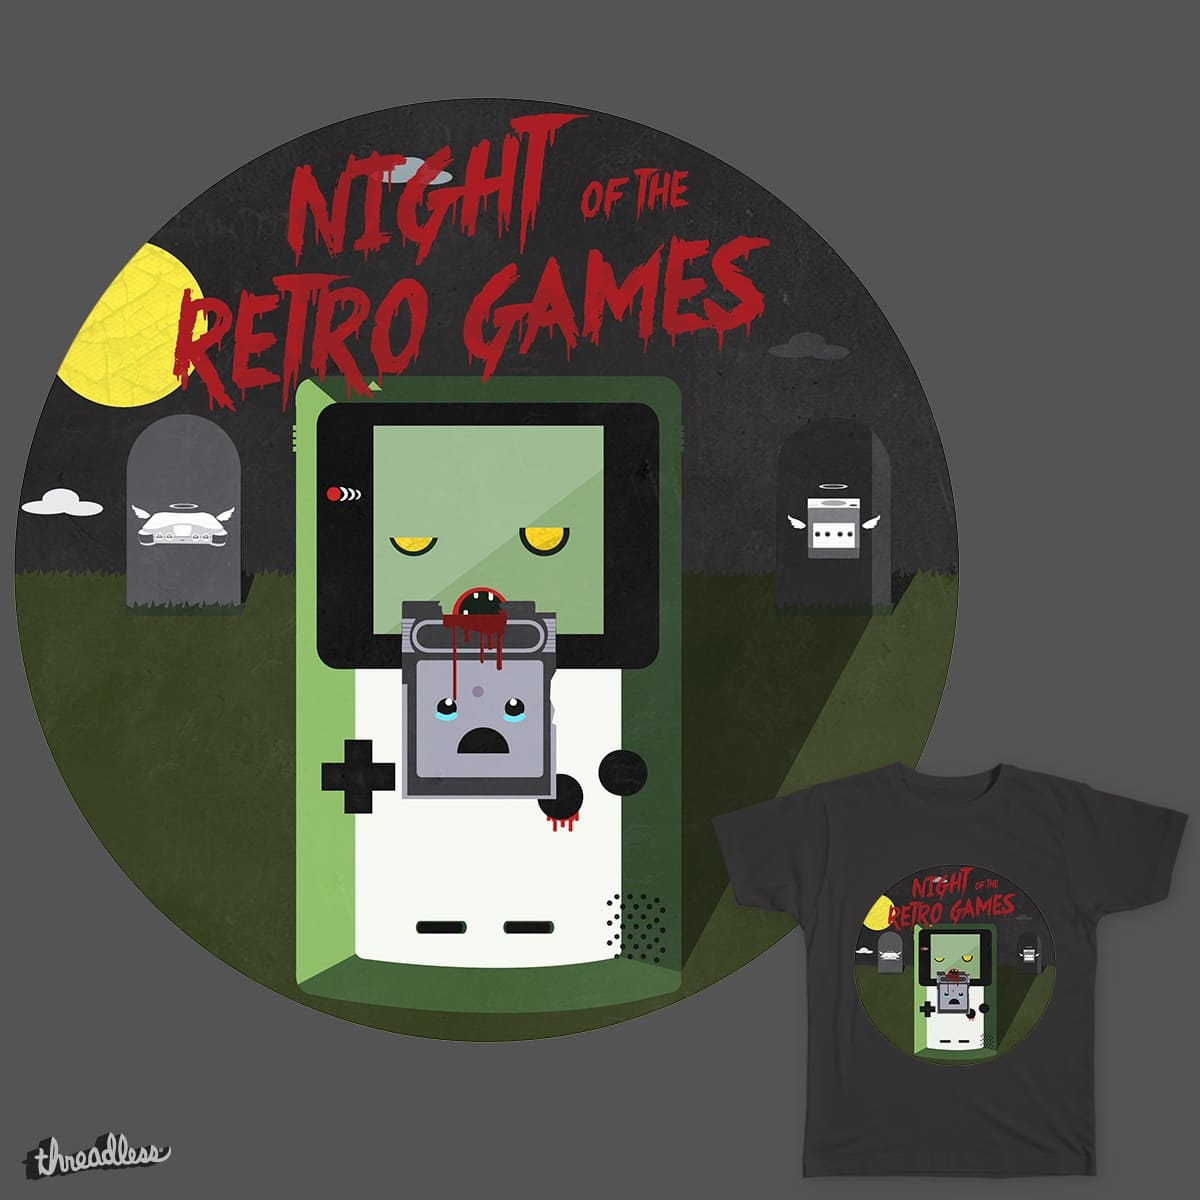 Night of the Retro Games by Knichols11 on Threadless